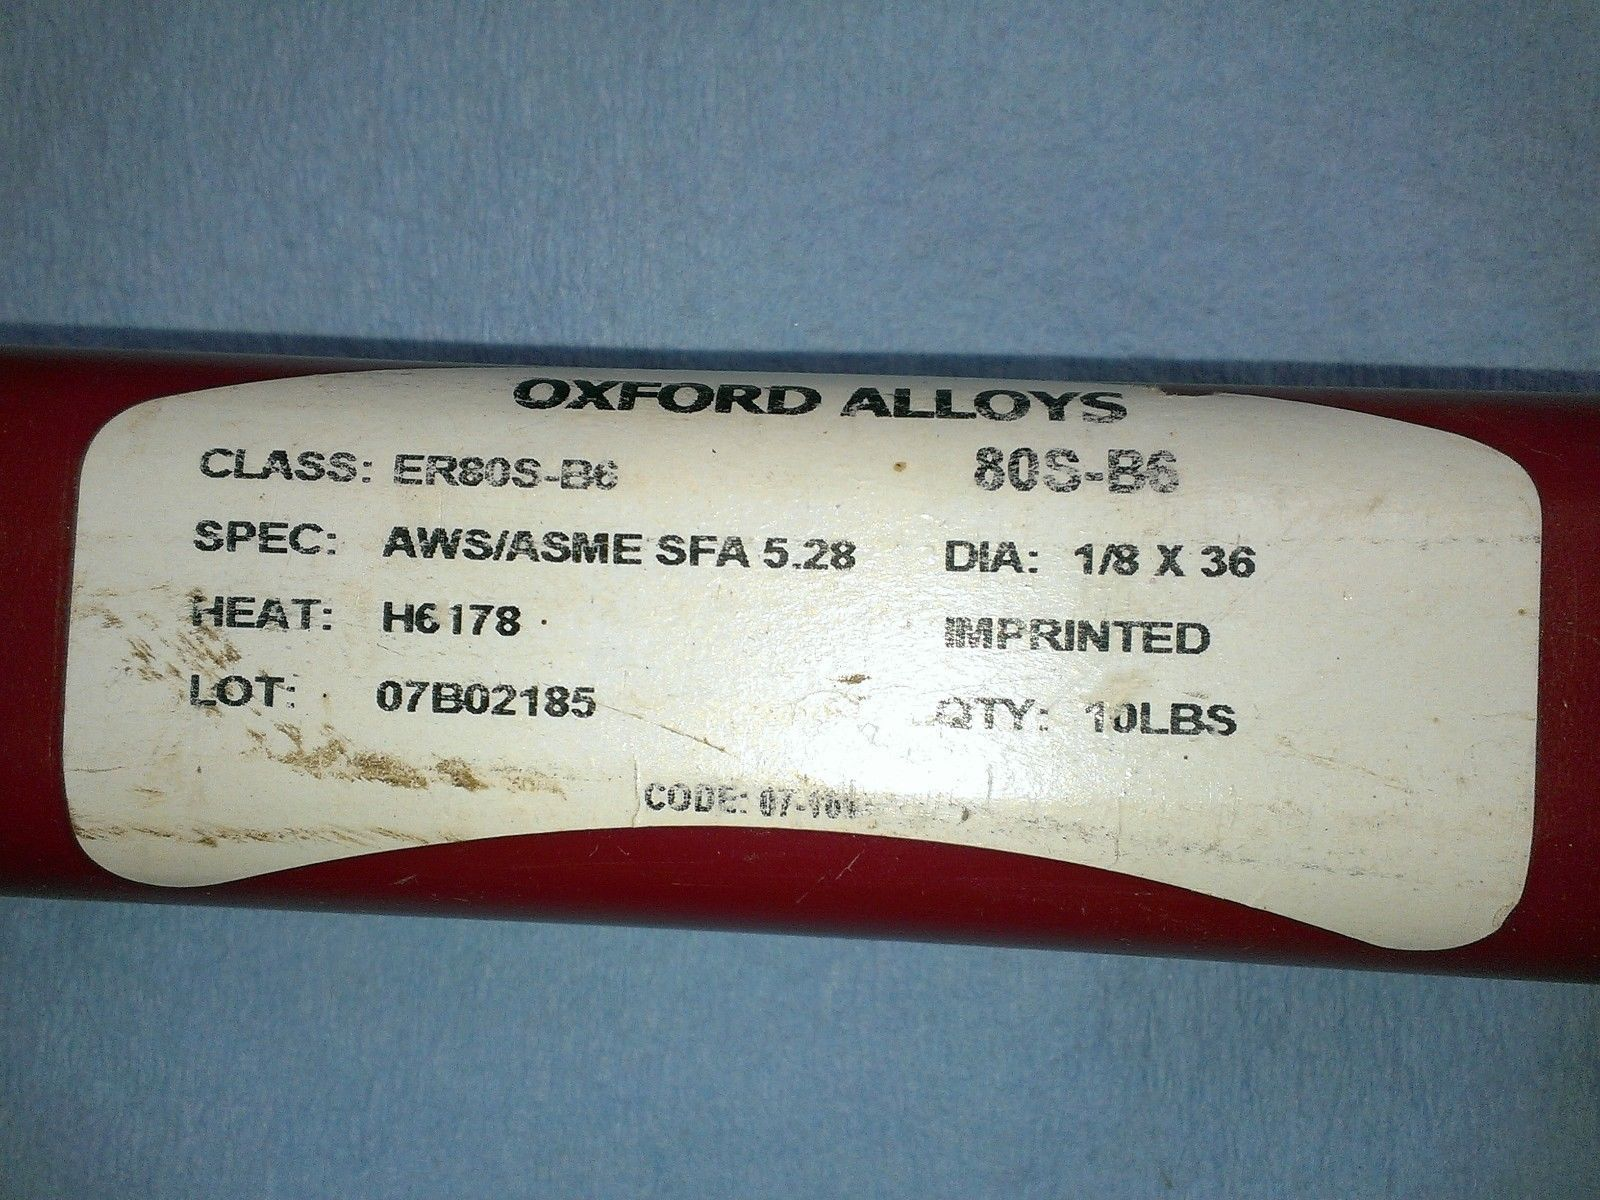 Primary image for Oxford Alloys, ER80S-B6, AWS/ASME SFA 5.28, HEAT H6 178,DIA: 1/8X36,LOT 07B02185